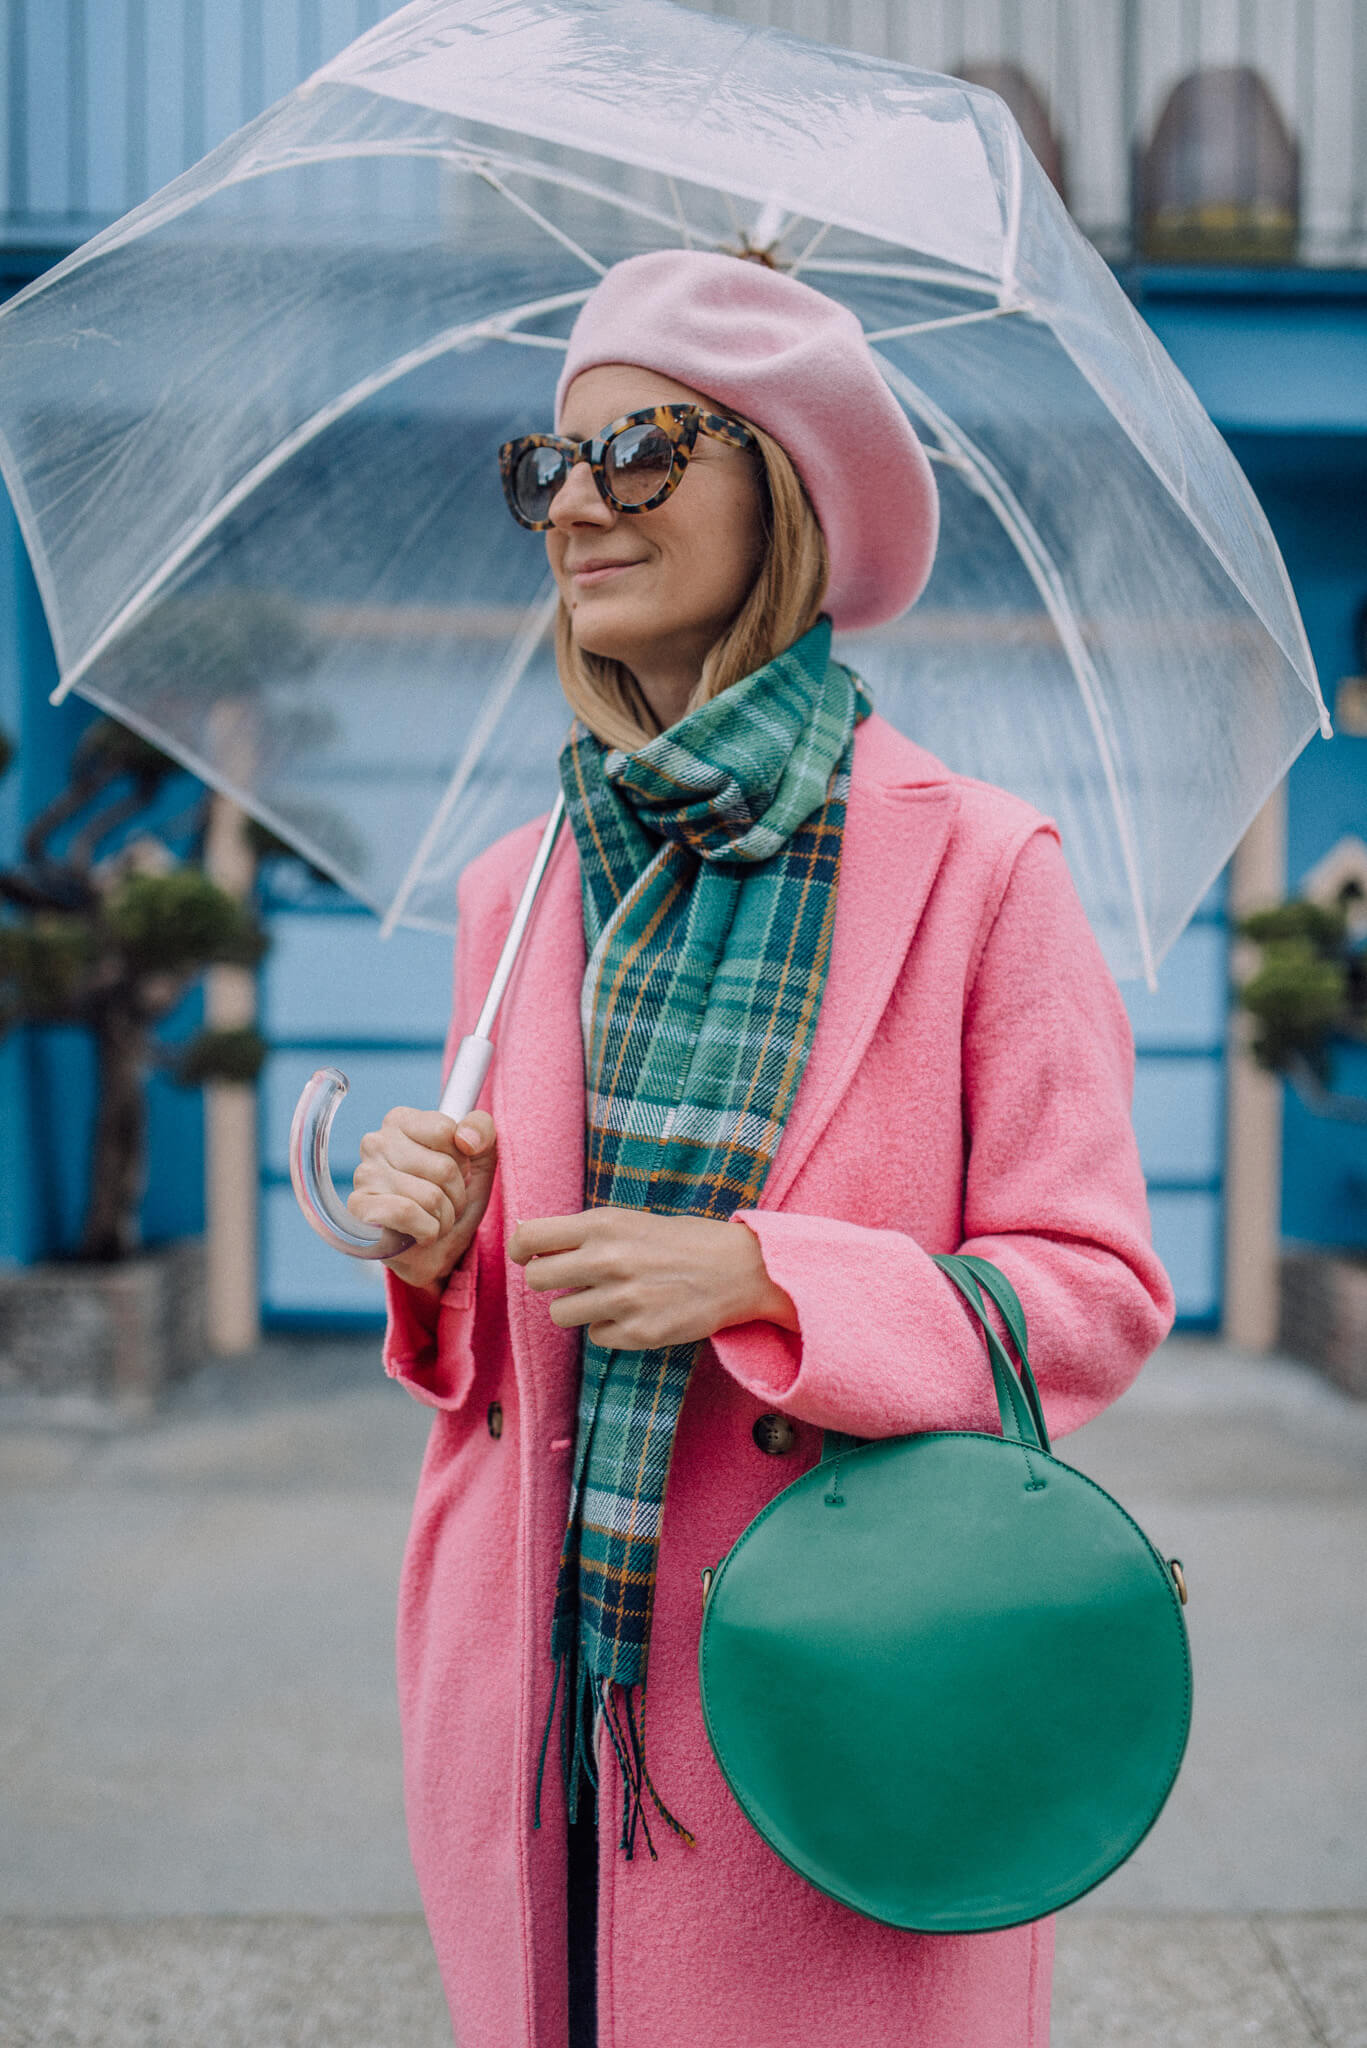 f67aee6d68b J.Crew Daphne Topcoat In Pink Outfit — zory mory